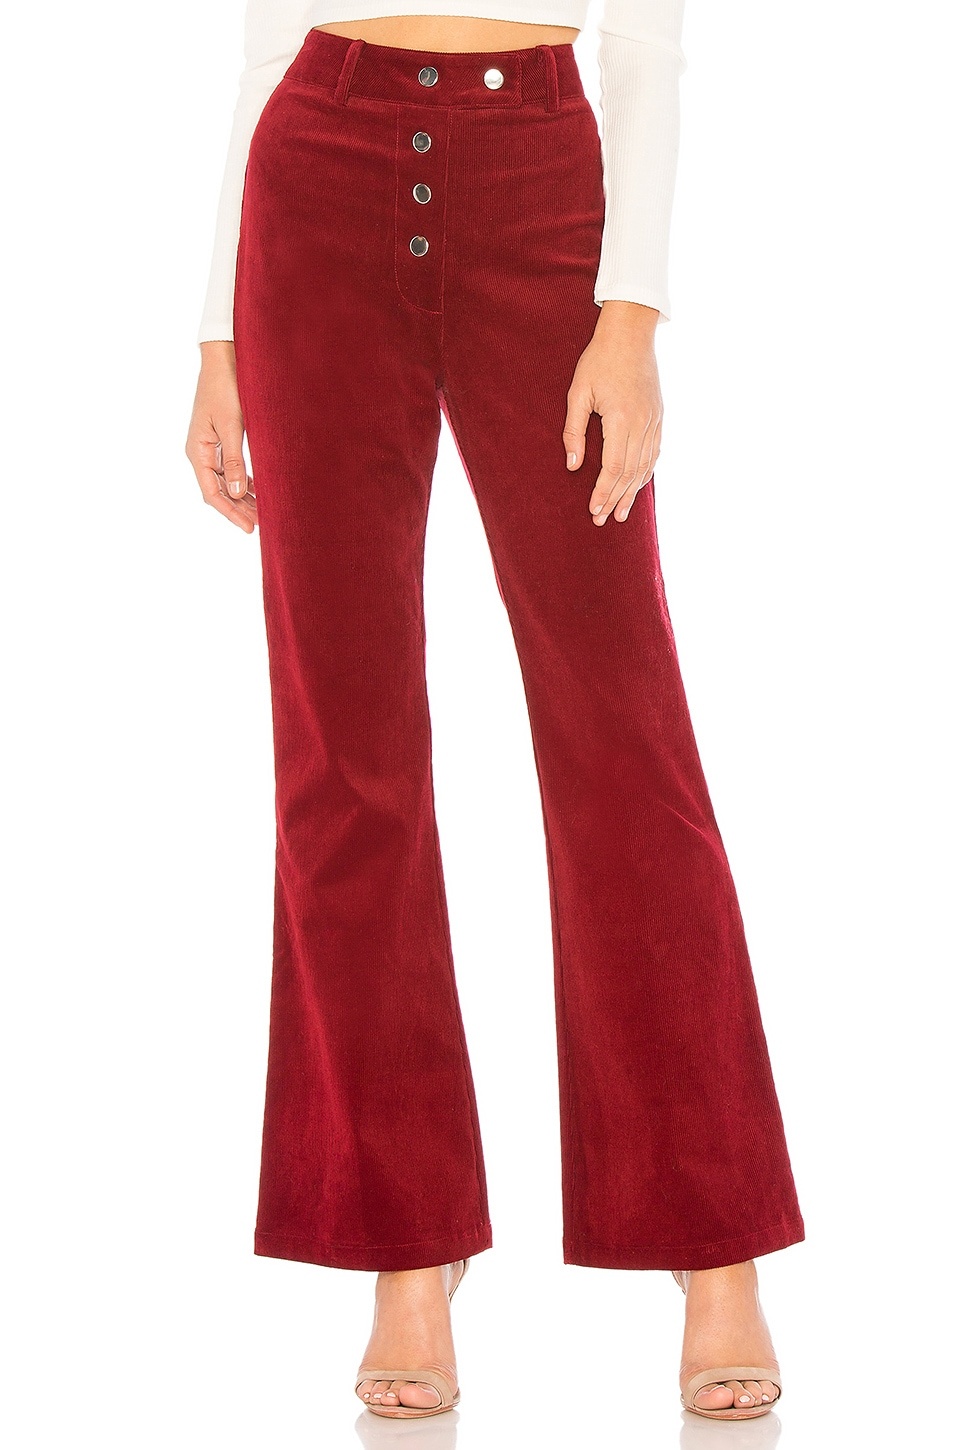 About Us Liv High Waisted Pants in Burgundy